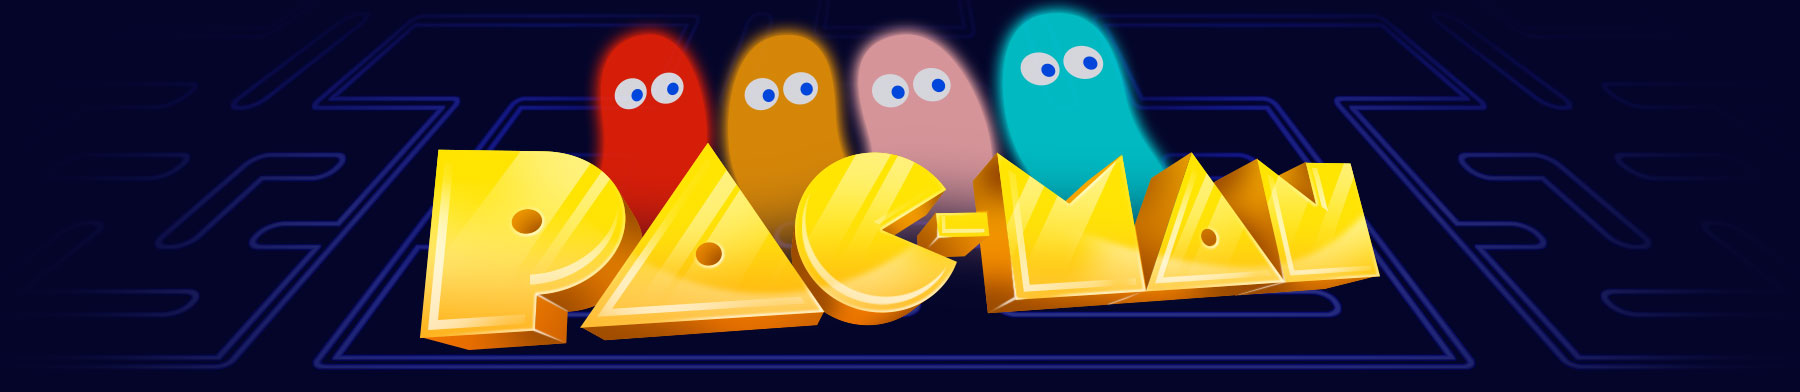 Pac Man Vector Art Arcade Game Hires Eps And Illustrator Ai Files